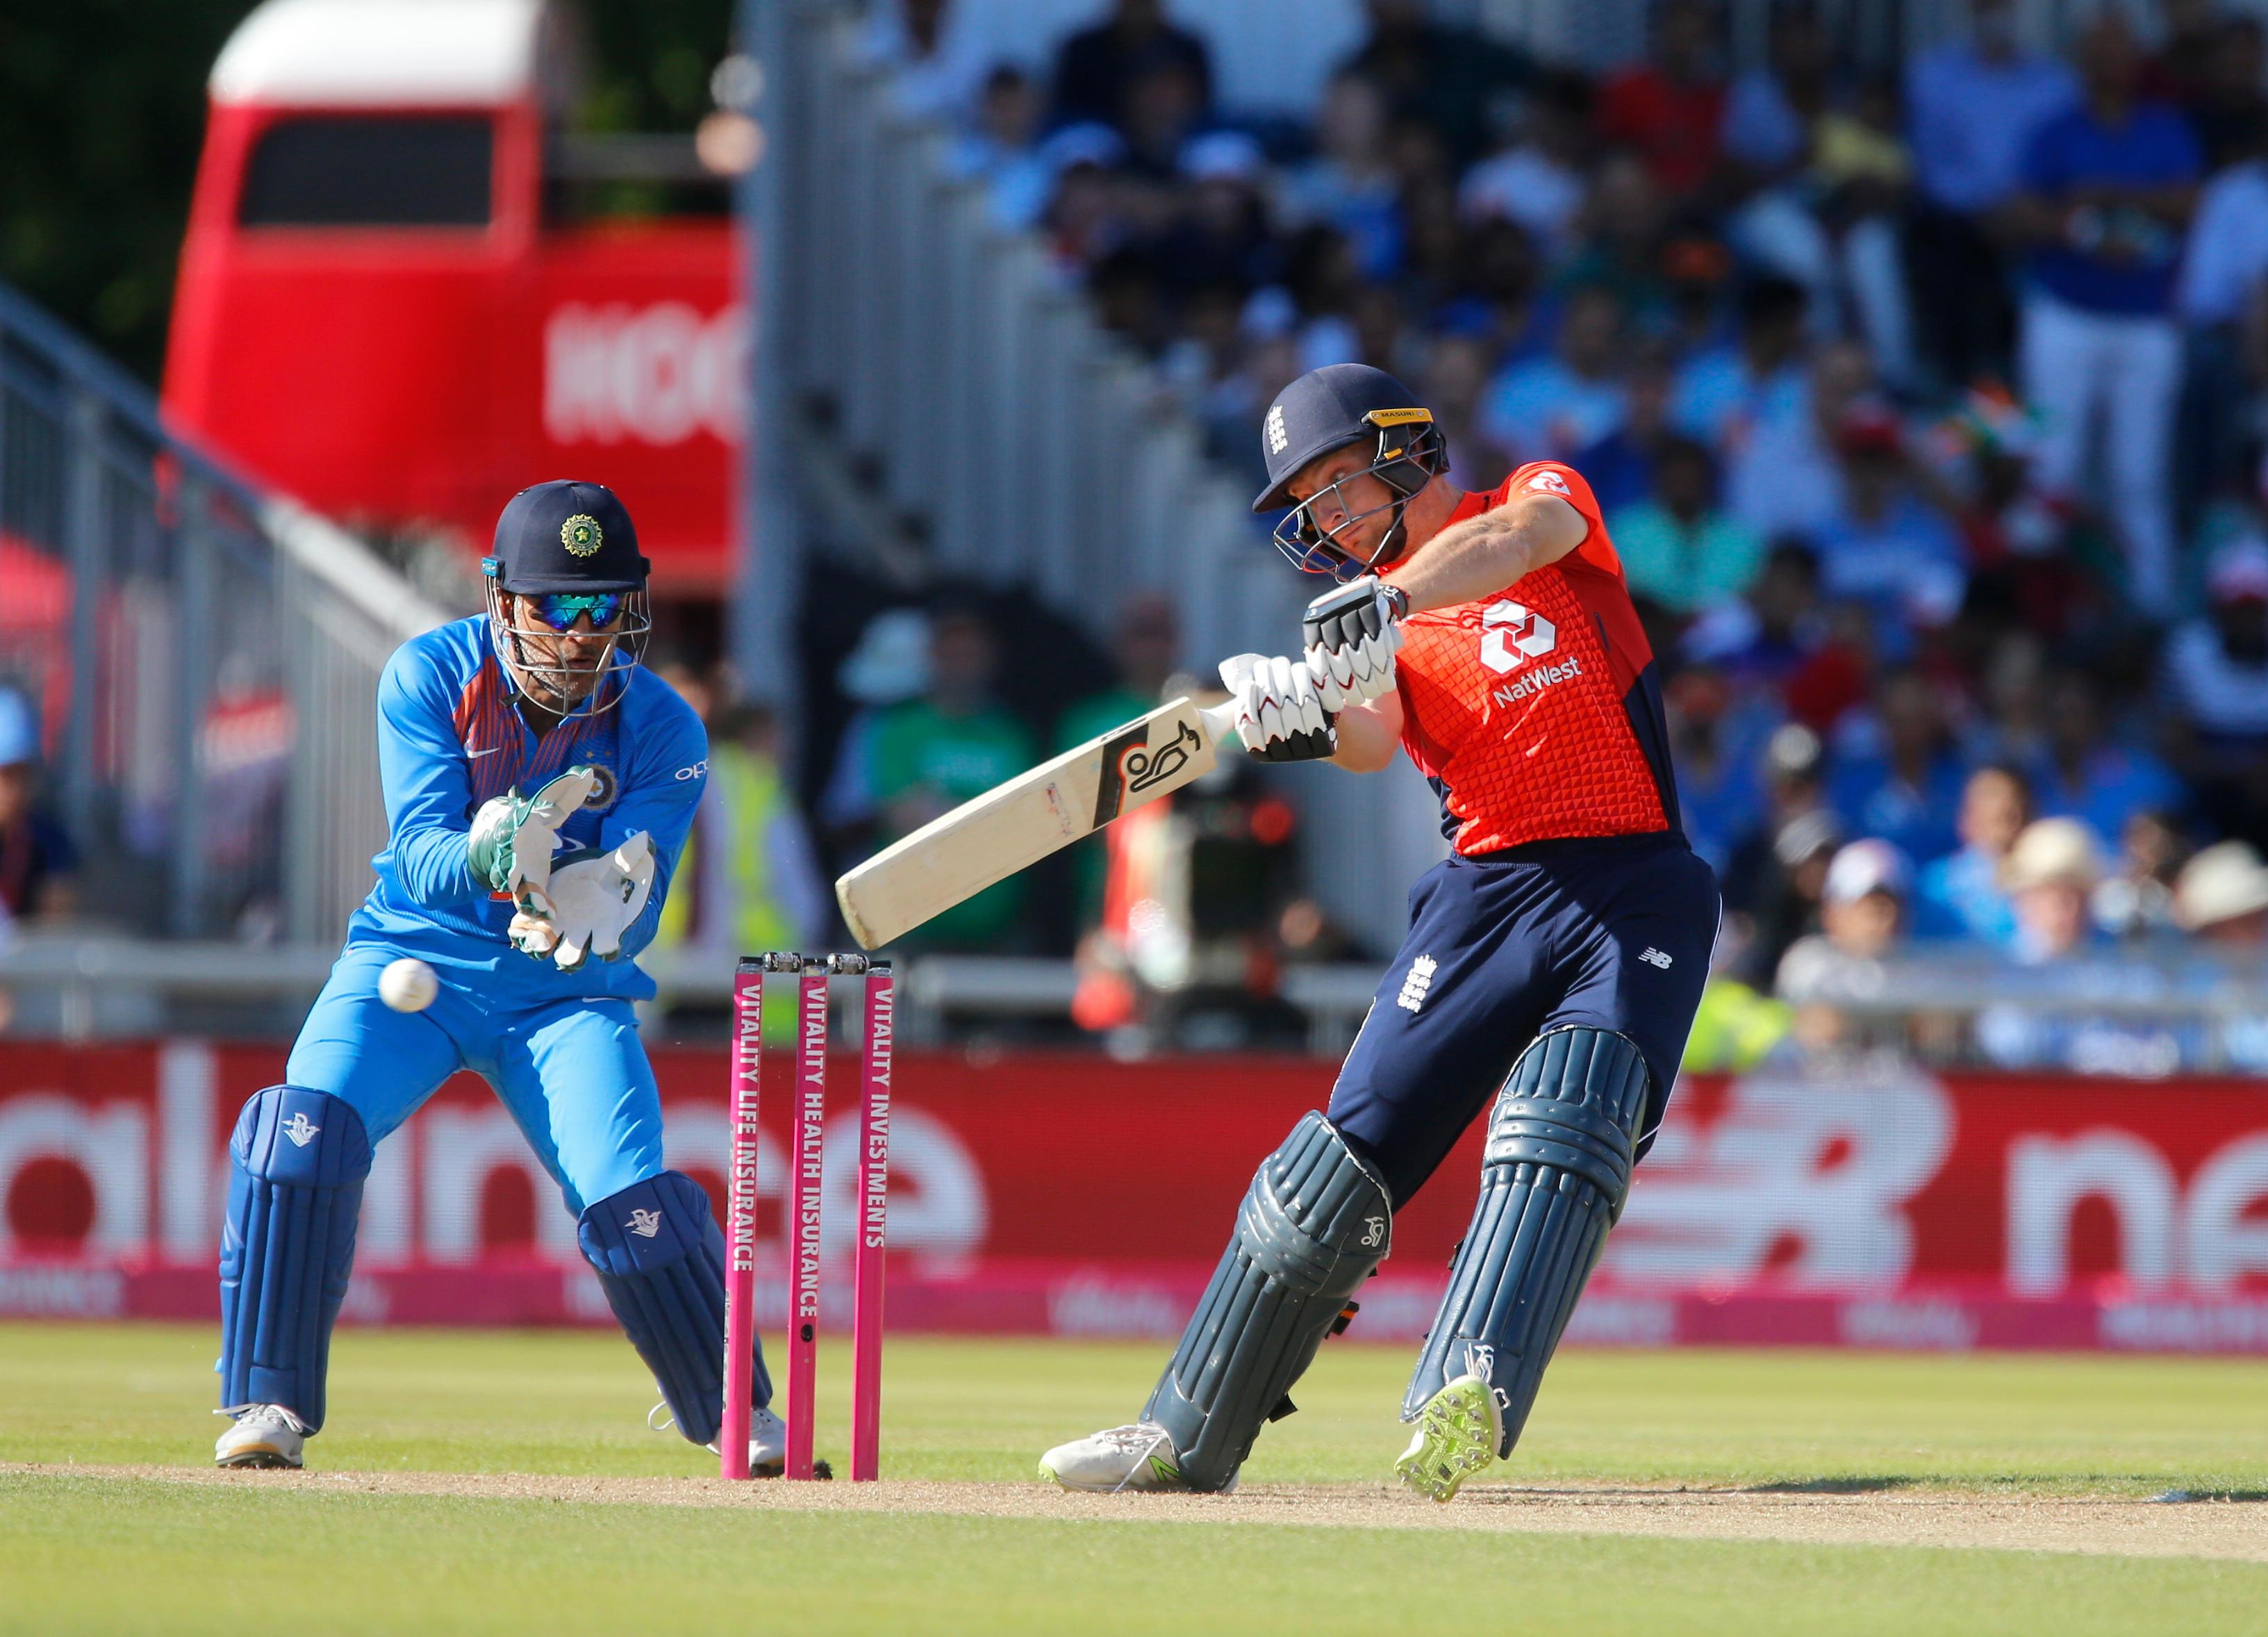 Jos Buttler got England off to a fast start once again, but England could not kick on